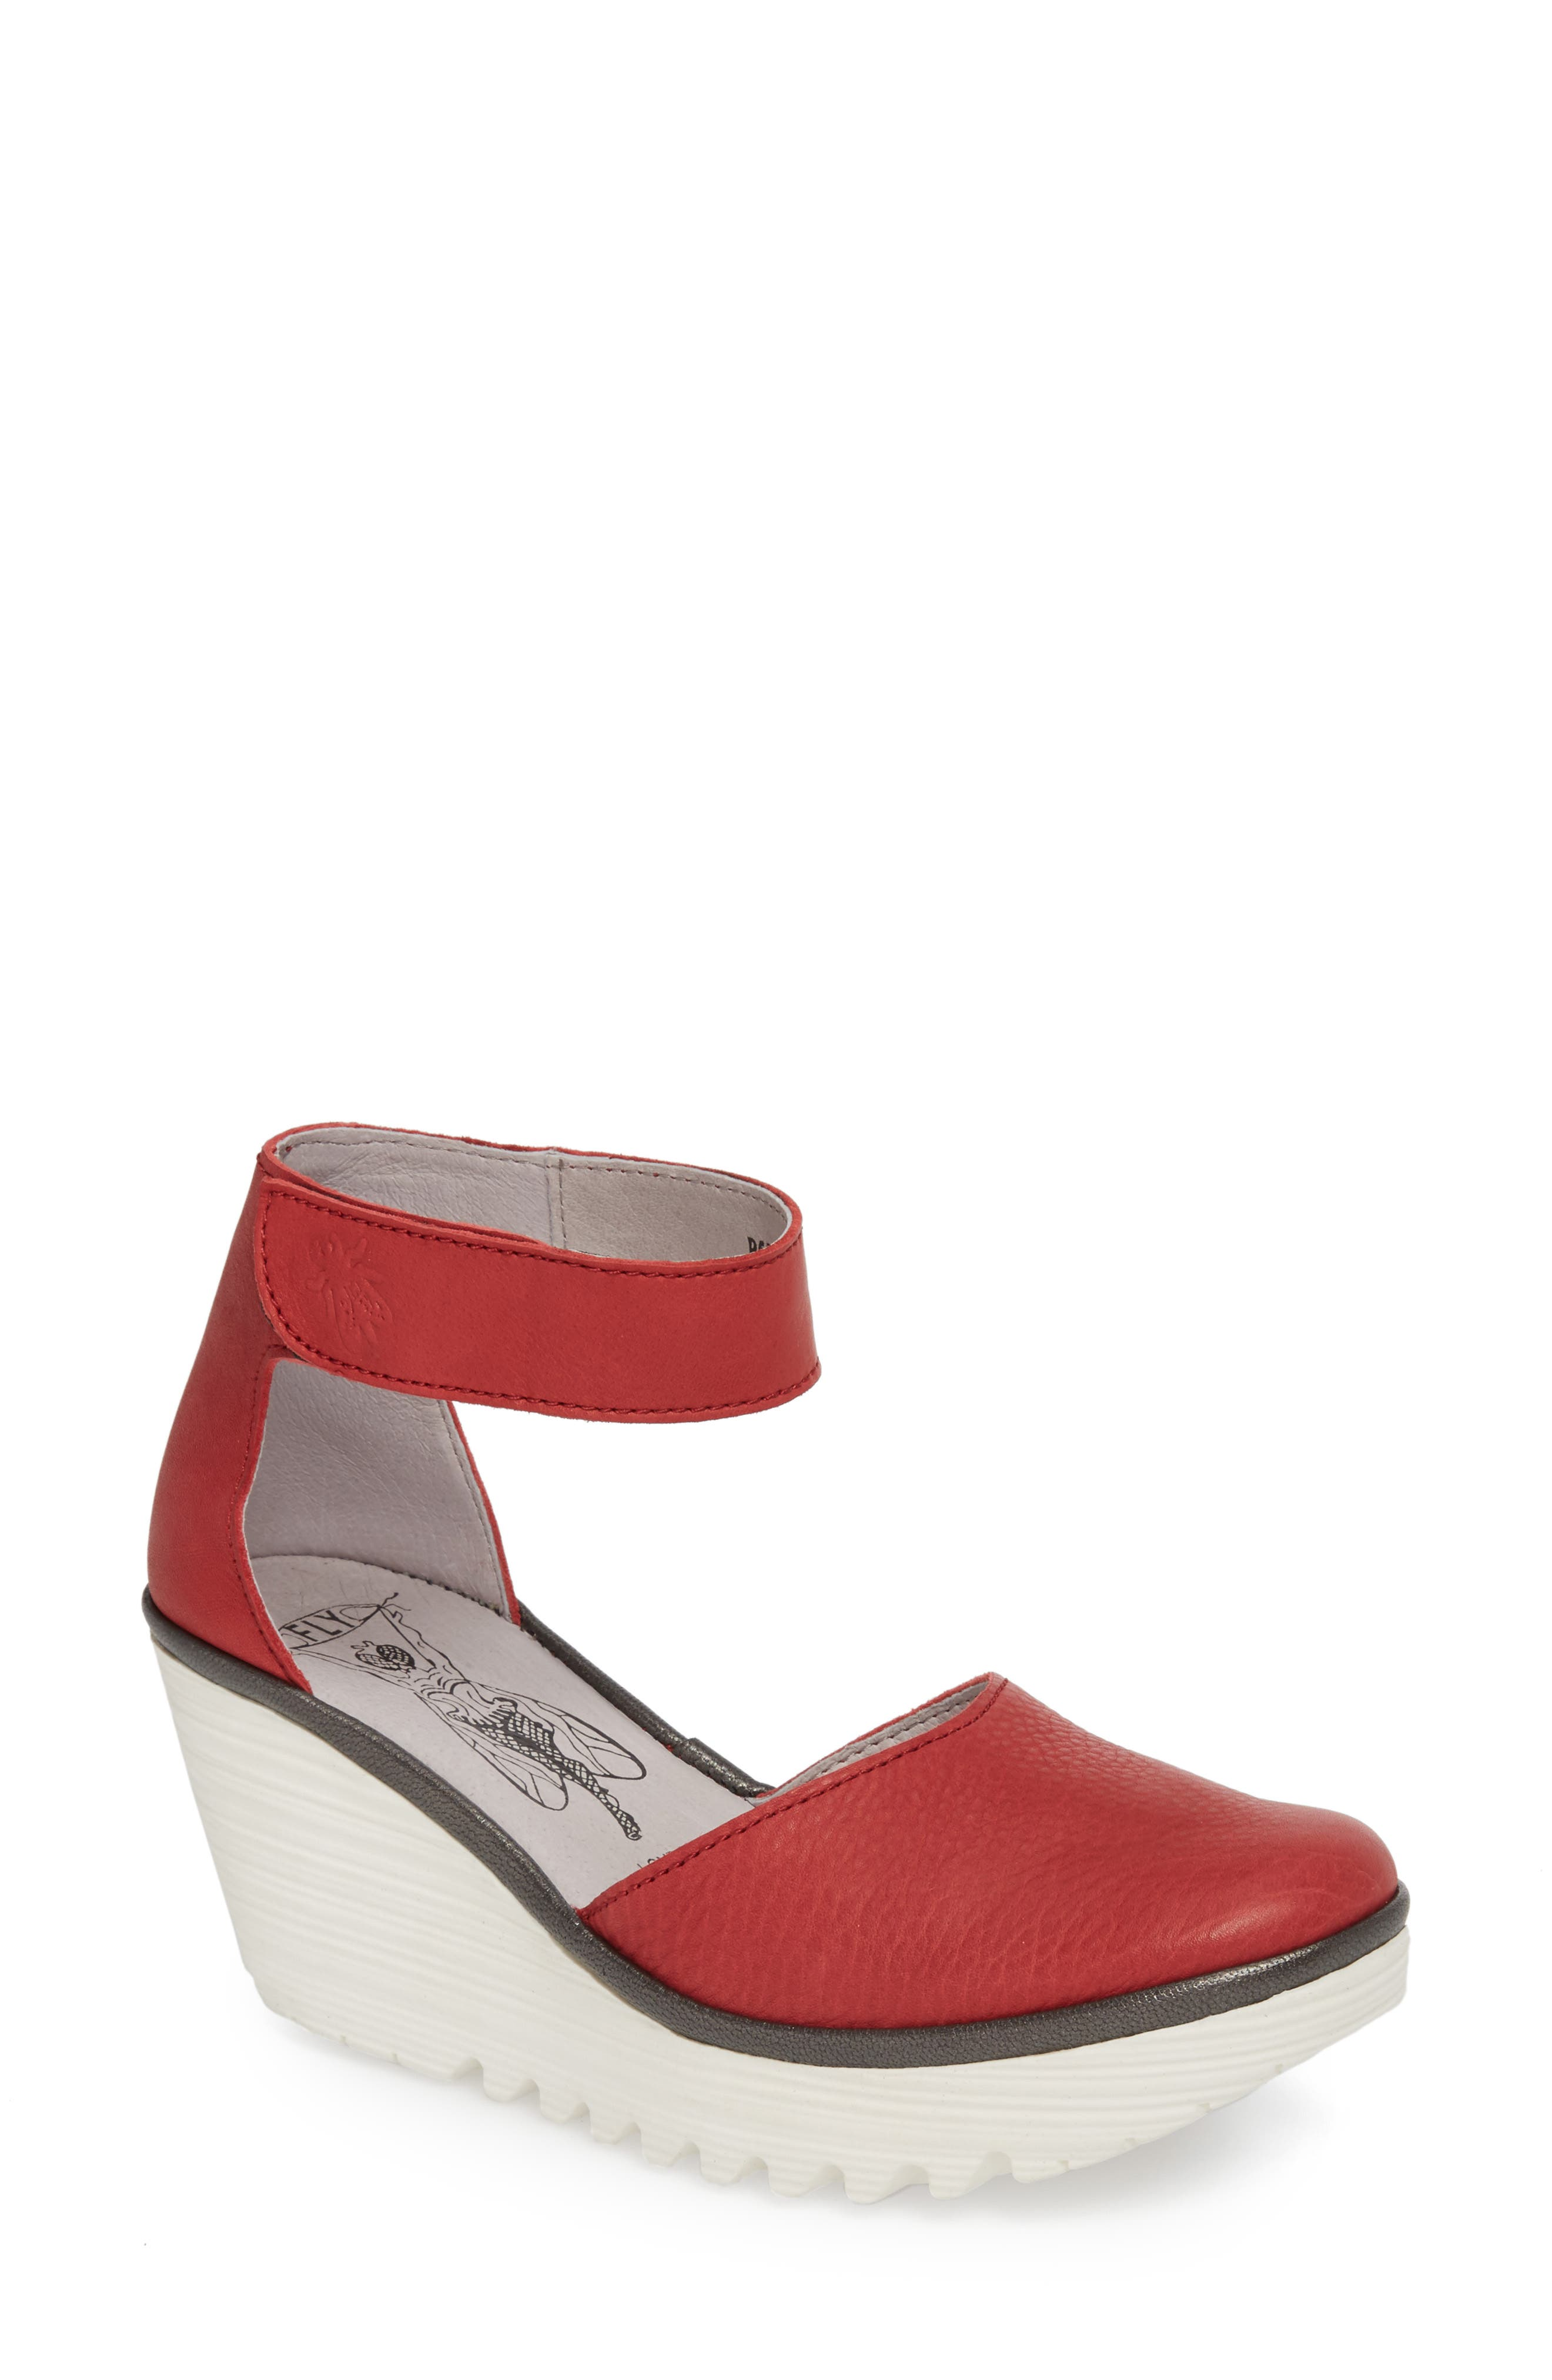 Yand Wedge Pump,                         Main,                         color, RED/ OFF WHITE BRITO LEATHER